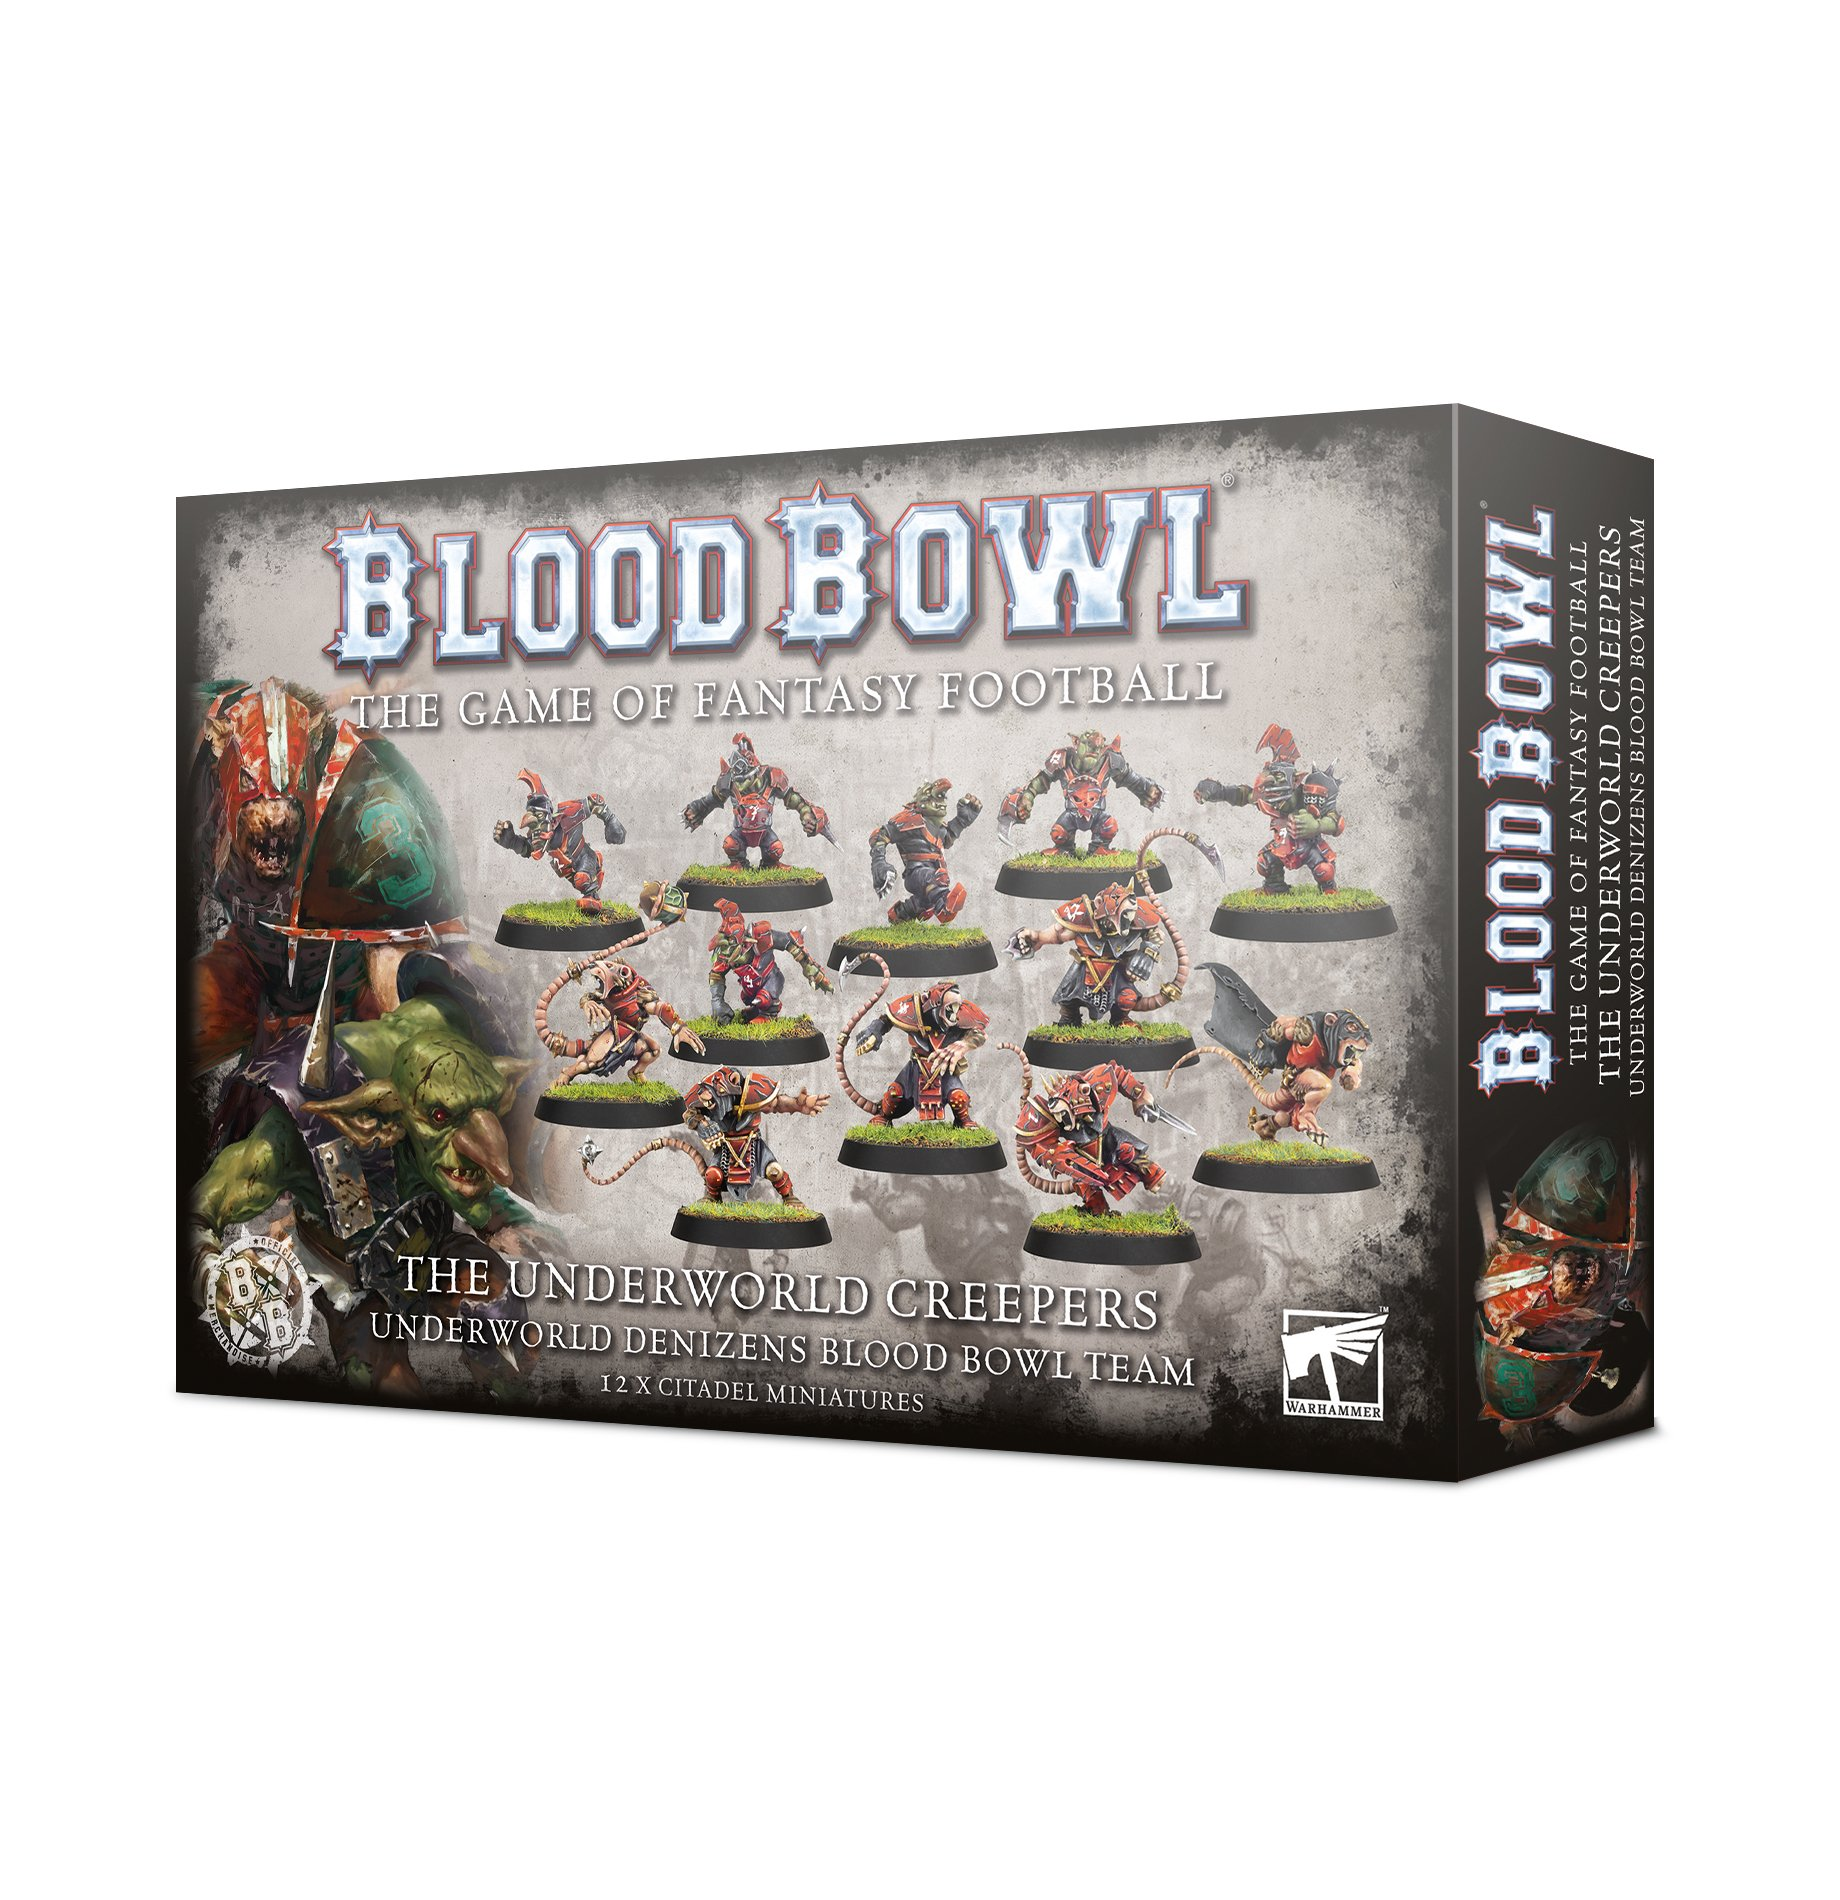 The Underworld Creepers, Blood Bowl